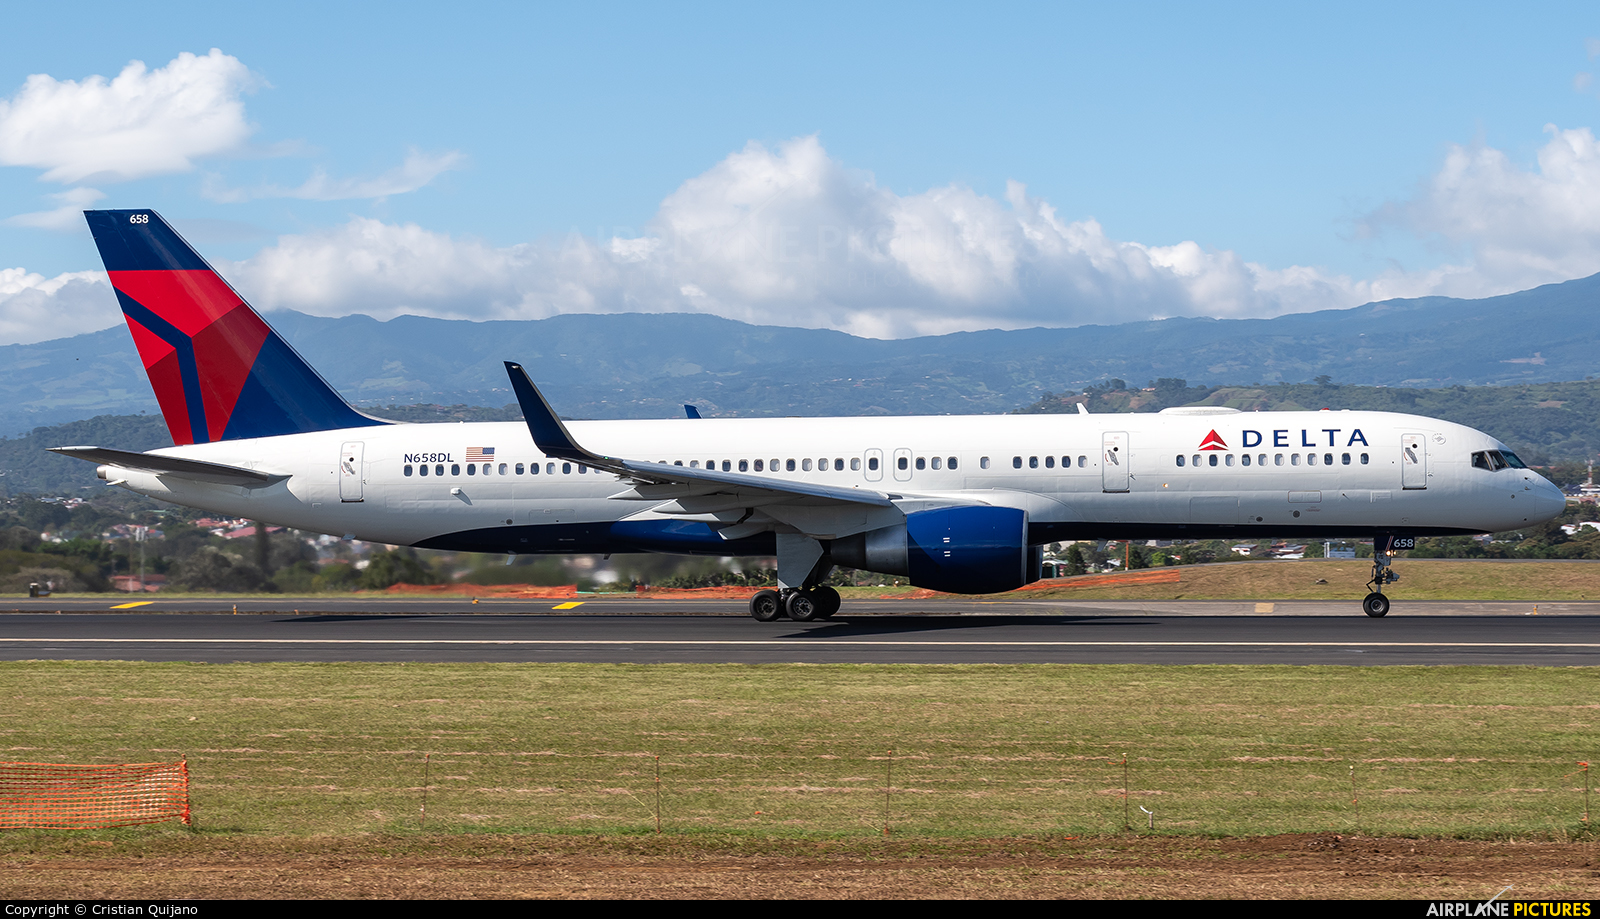 Delta Air Lines N658DL aircraft at San Jose - Juan Santamaría Intl